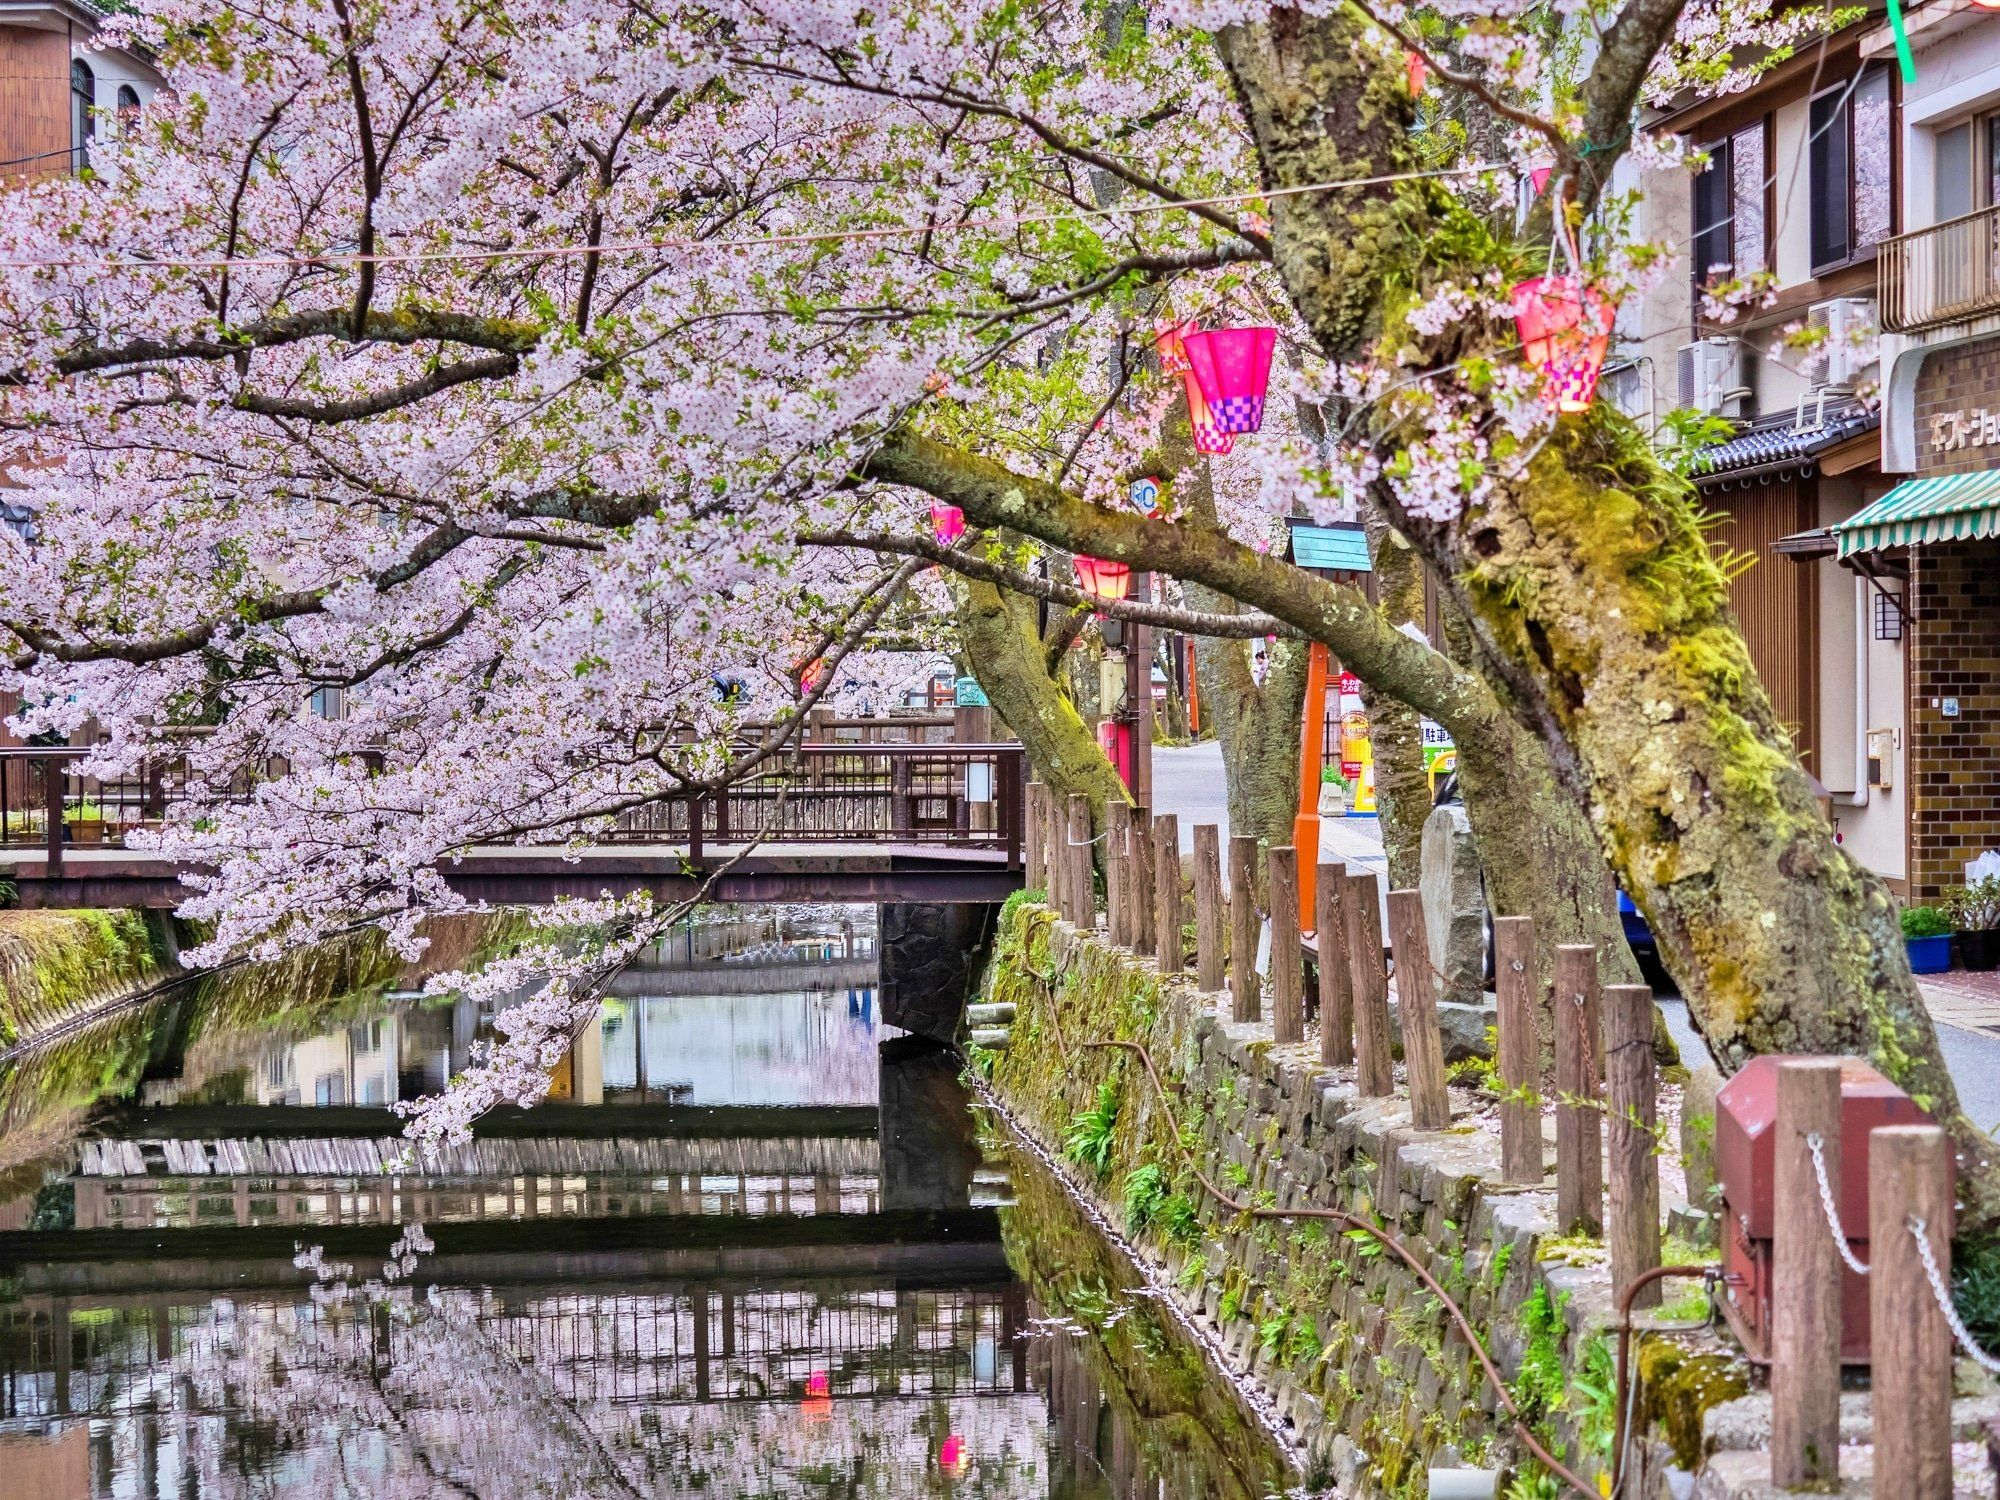 Cherry Blossoms In Hyogo 2020 14 Incredible Spots For Seasonal Blooms Matcha Japan Travel Web Magazine In The Sp Matcha Japan Japan Travel The Incredibles